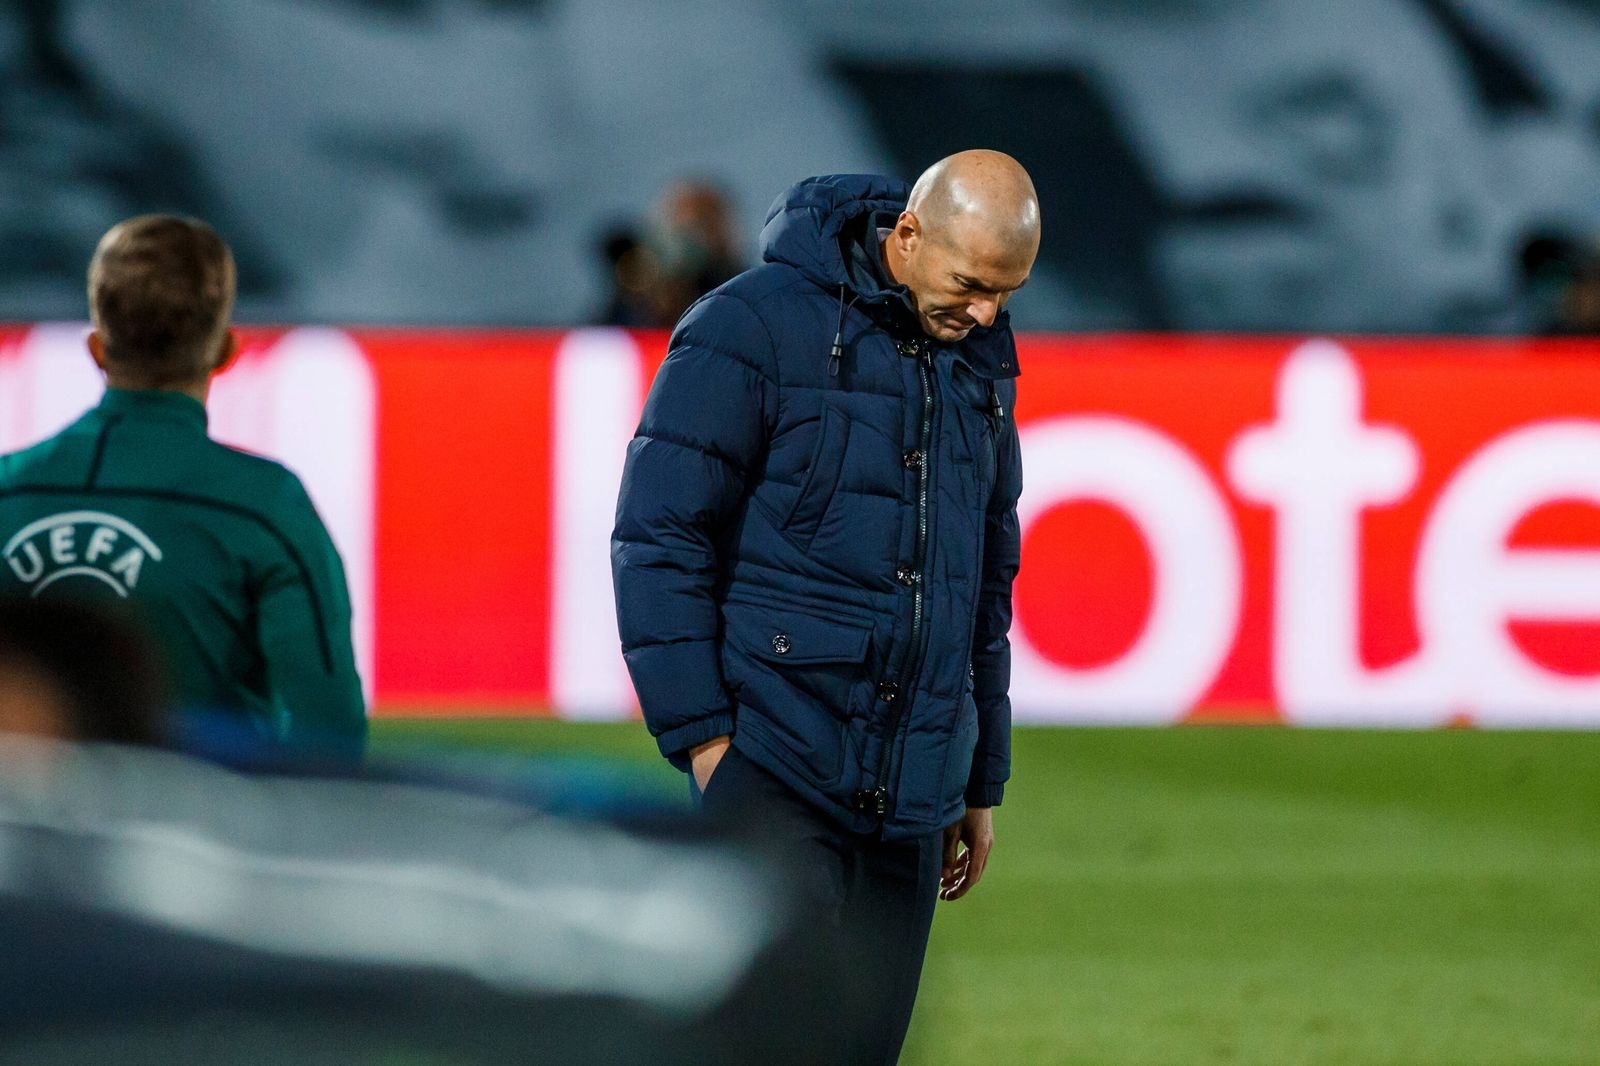 October 21, 2020, Madrid, Spain: Zinedine Zidane of Real Madrid during the UEFA Champions League match between Real Mad